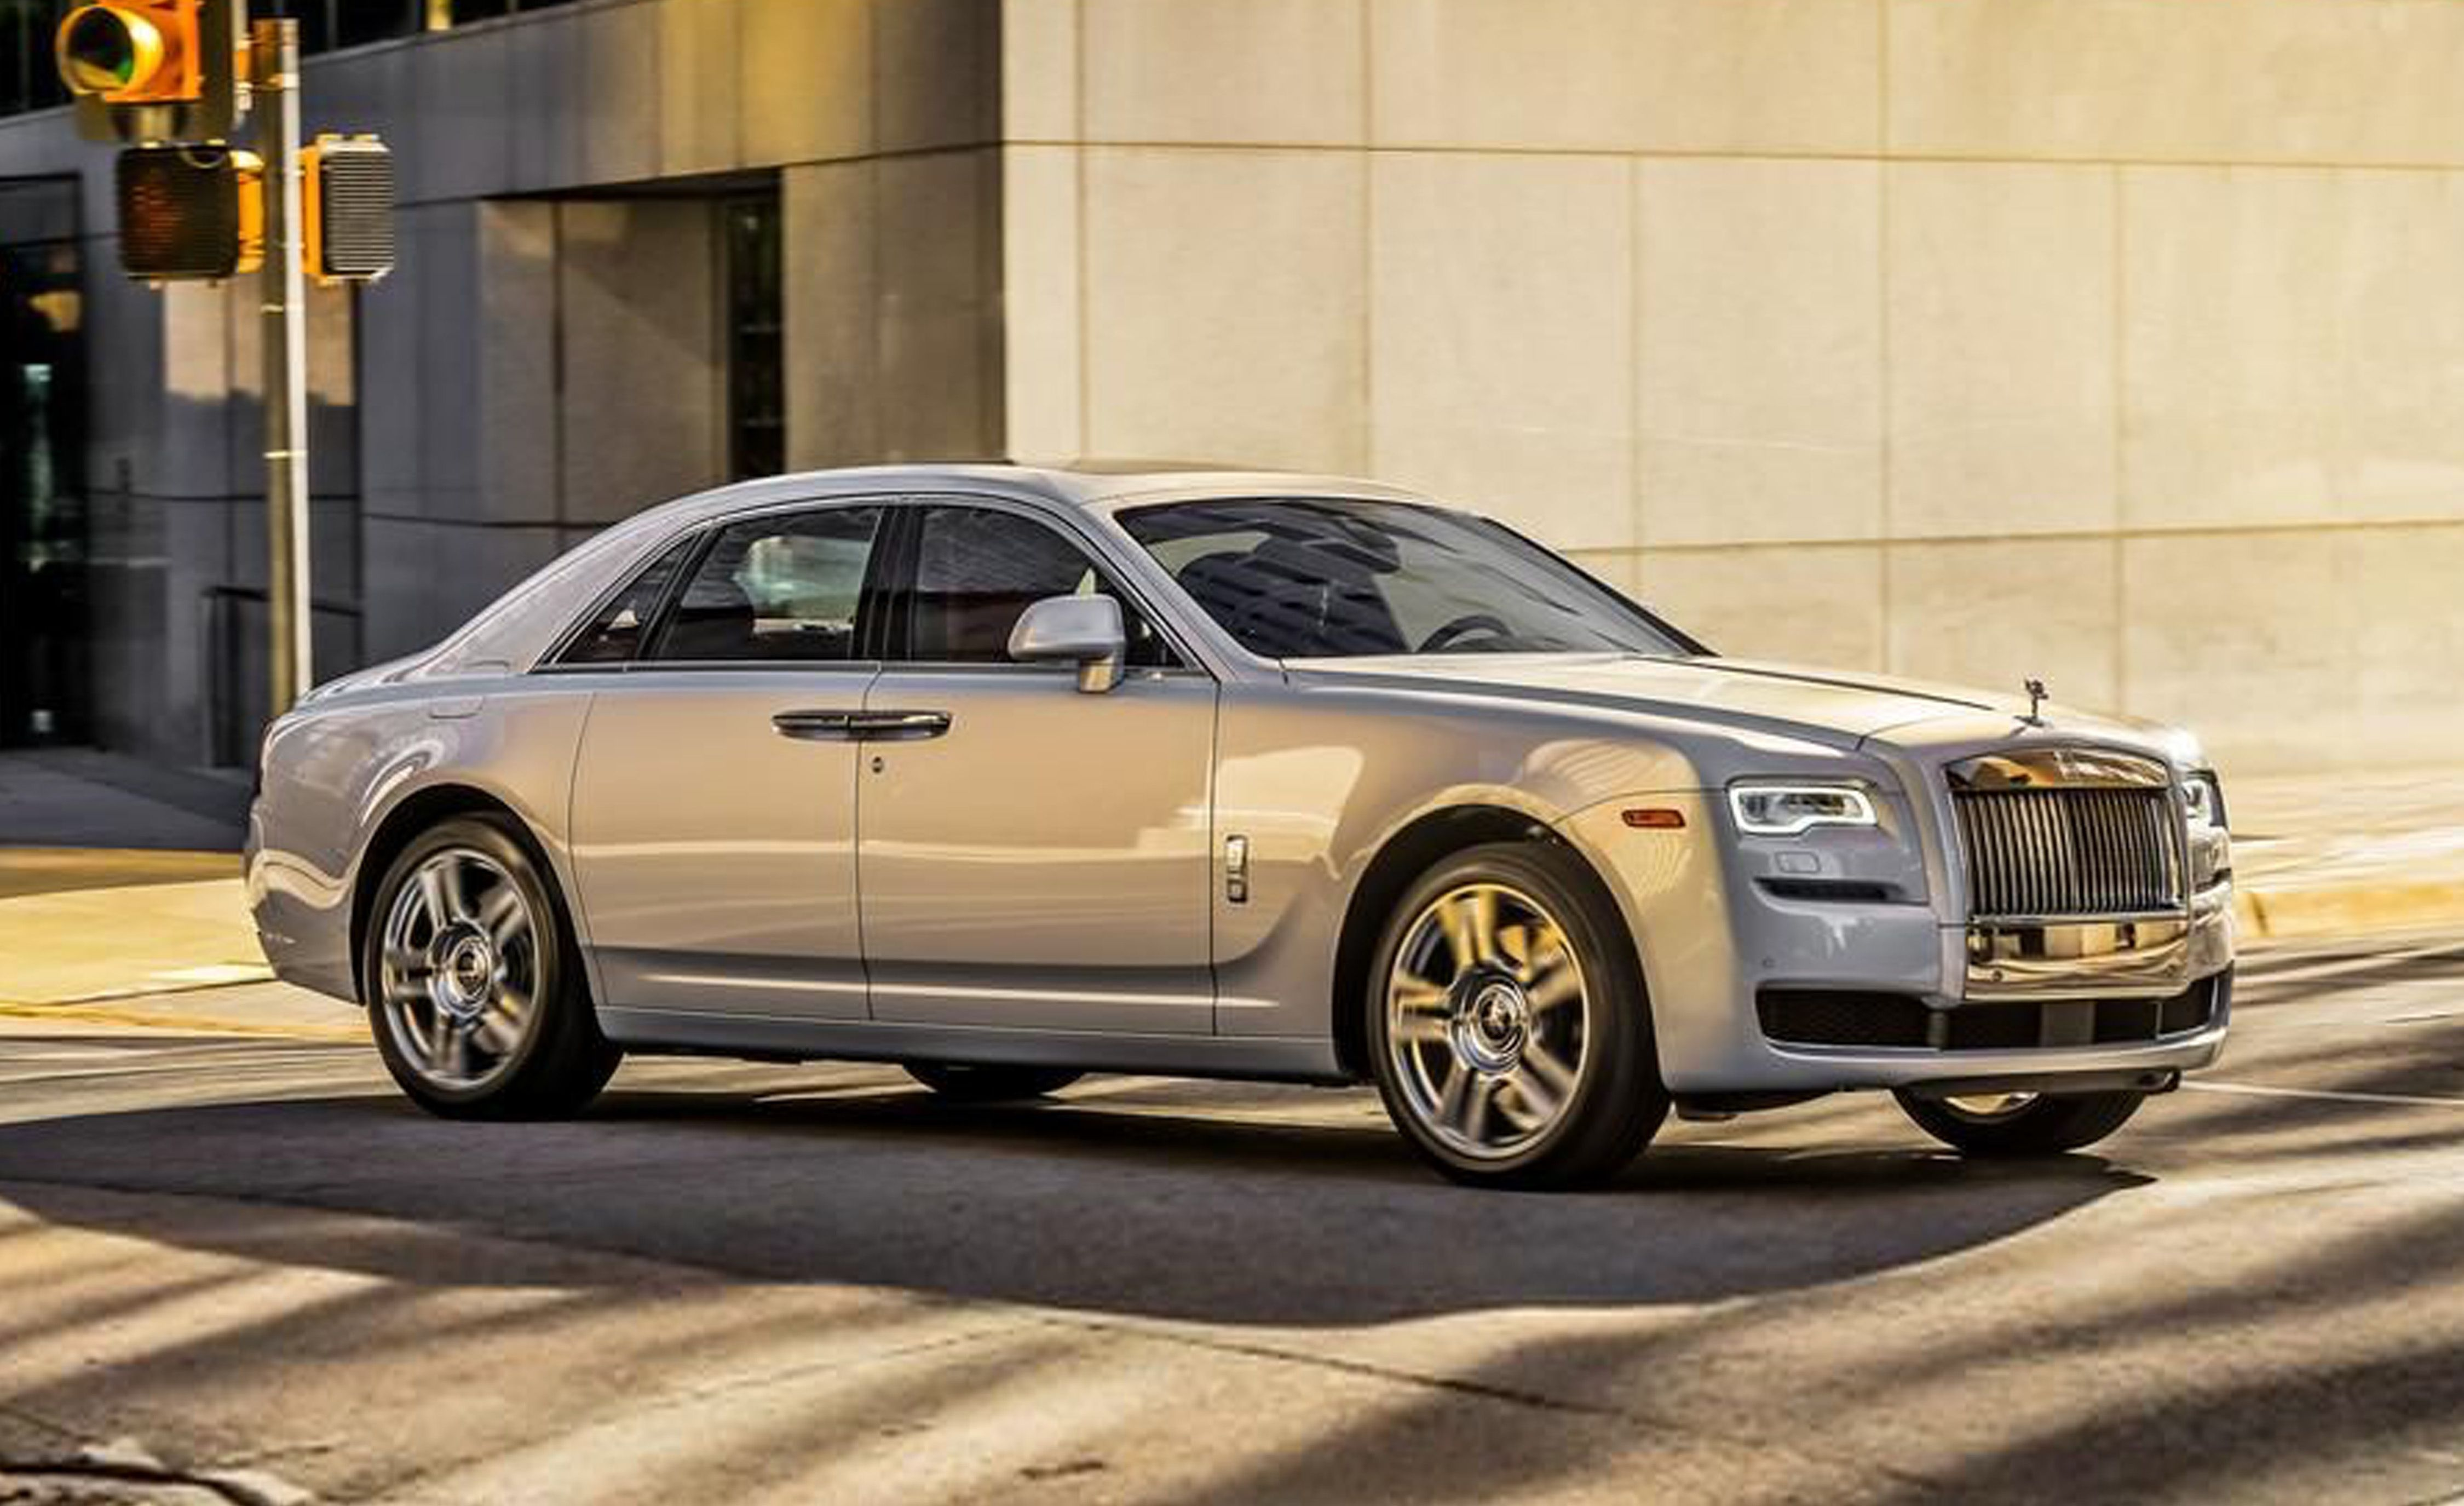 2018 Rolls-Royce Ghost Series II Reviews